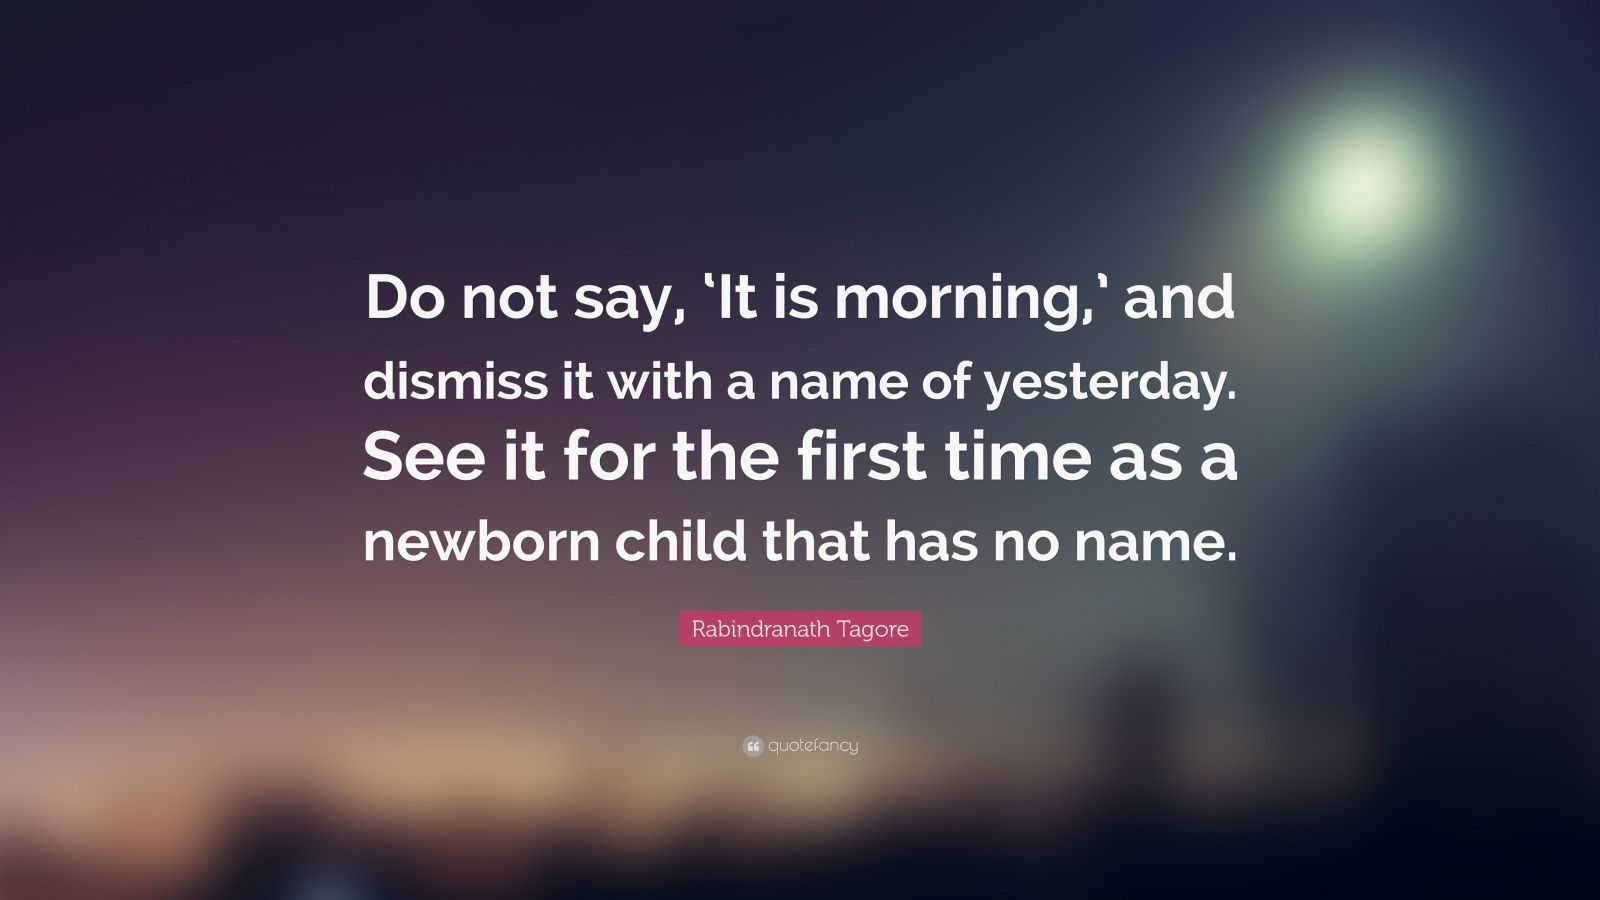 """Rabindranath Tagore Quote: """"Do not say, 'It is morning,' and dismiss it with a name of yesterday. See it for the first time as a newborn child that has no name."""""""